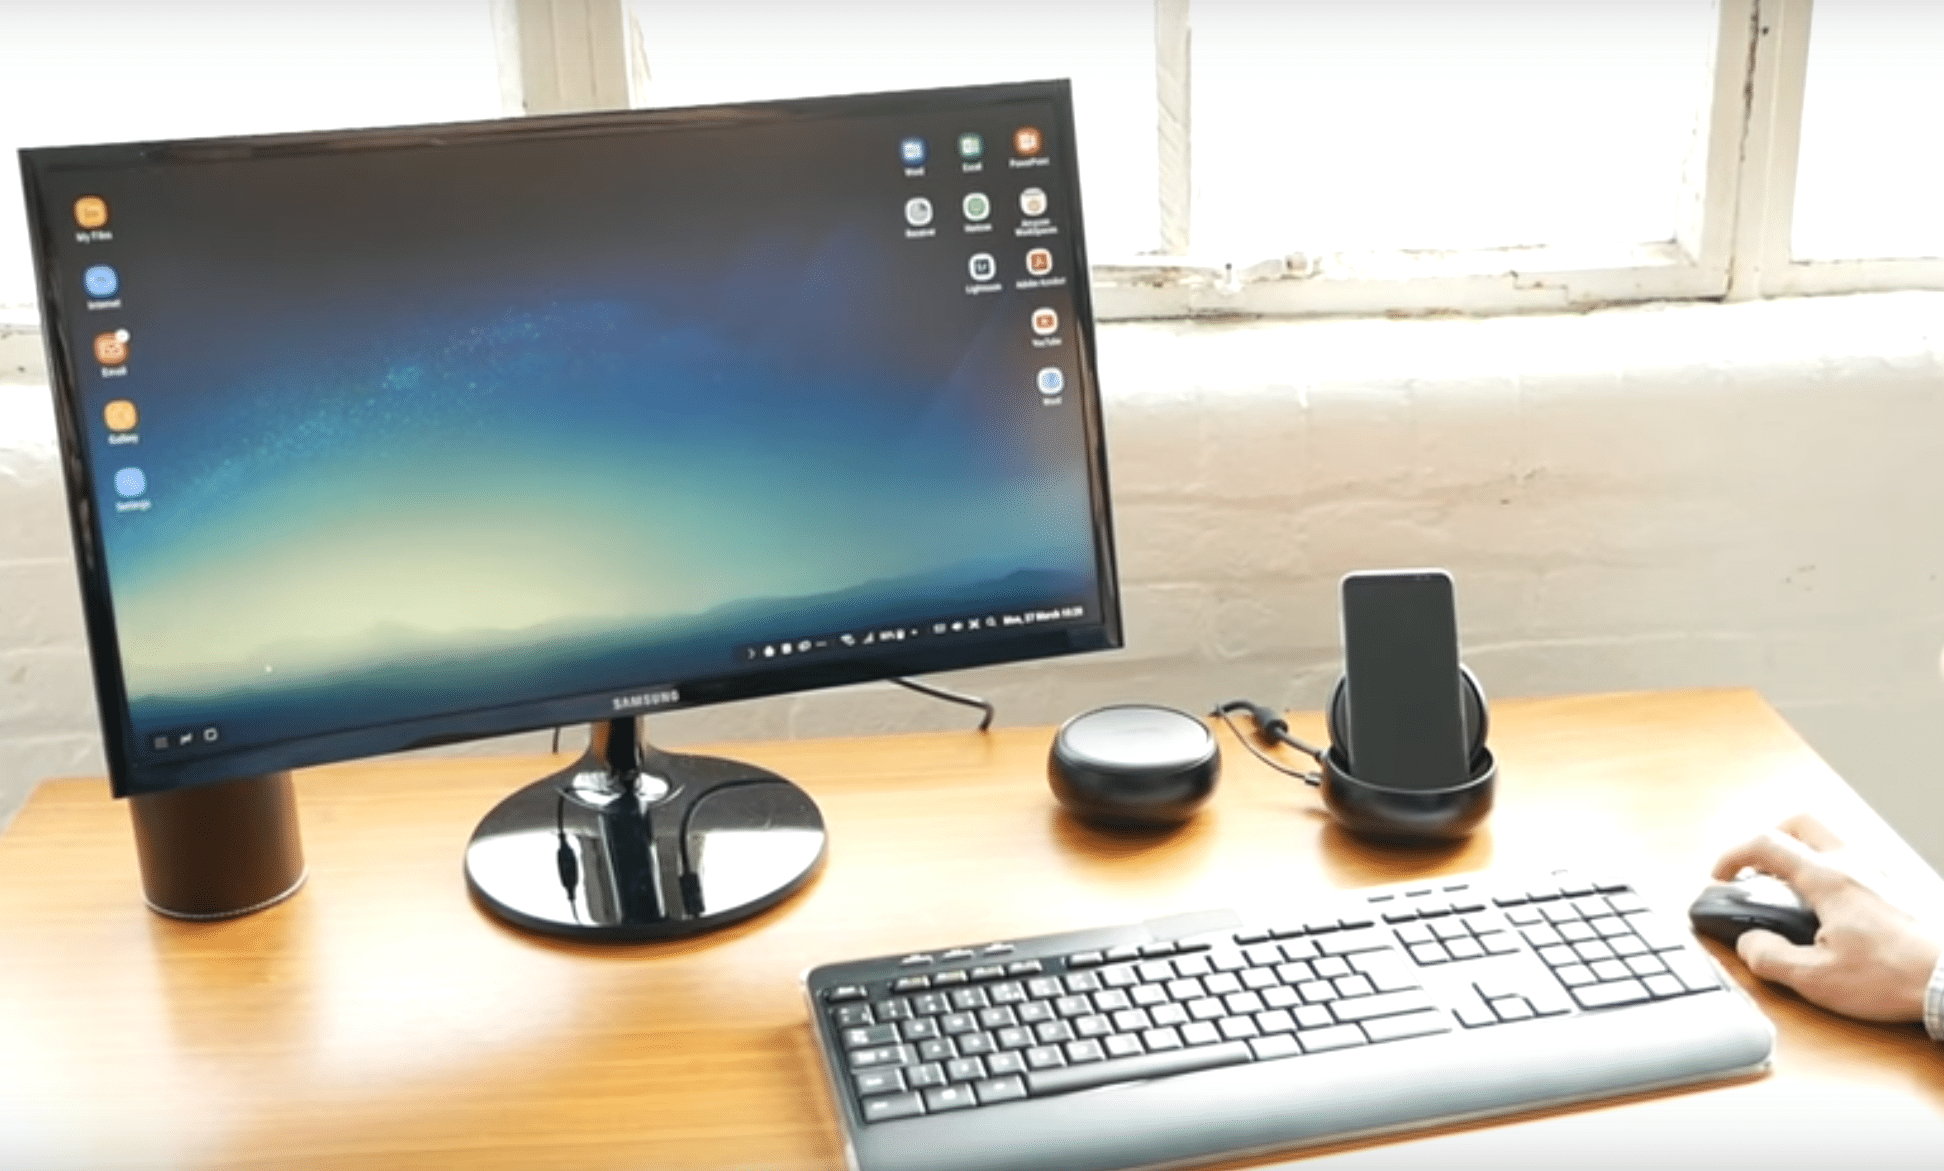 Samsung Galaxy Dex Desktop Modus